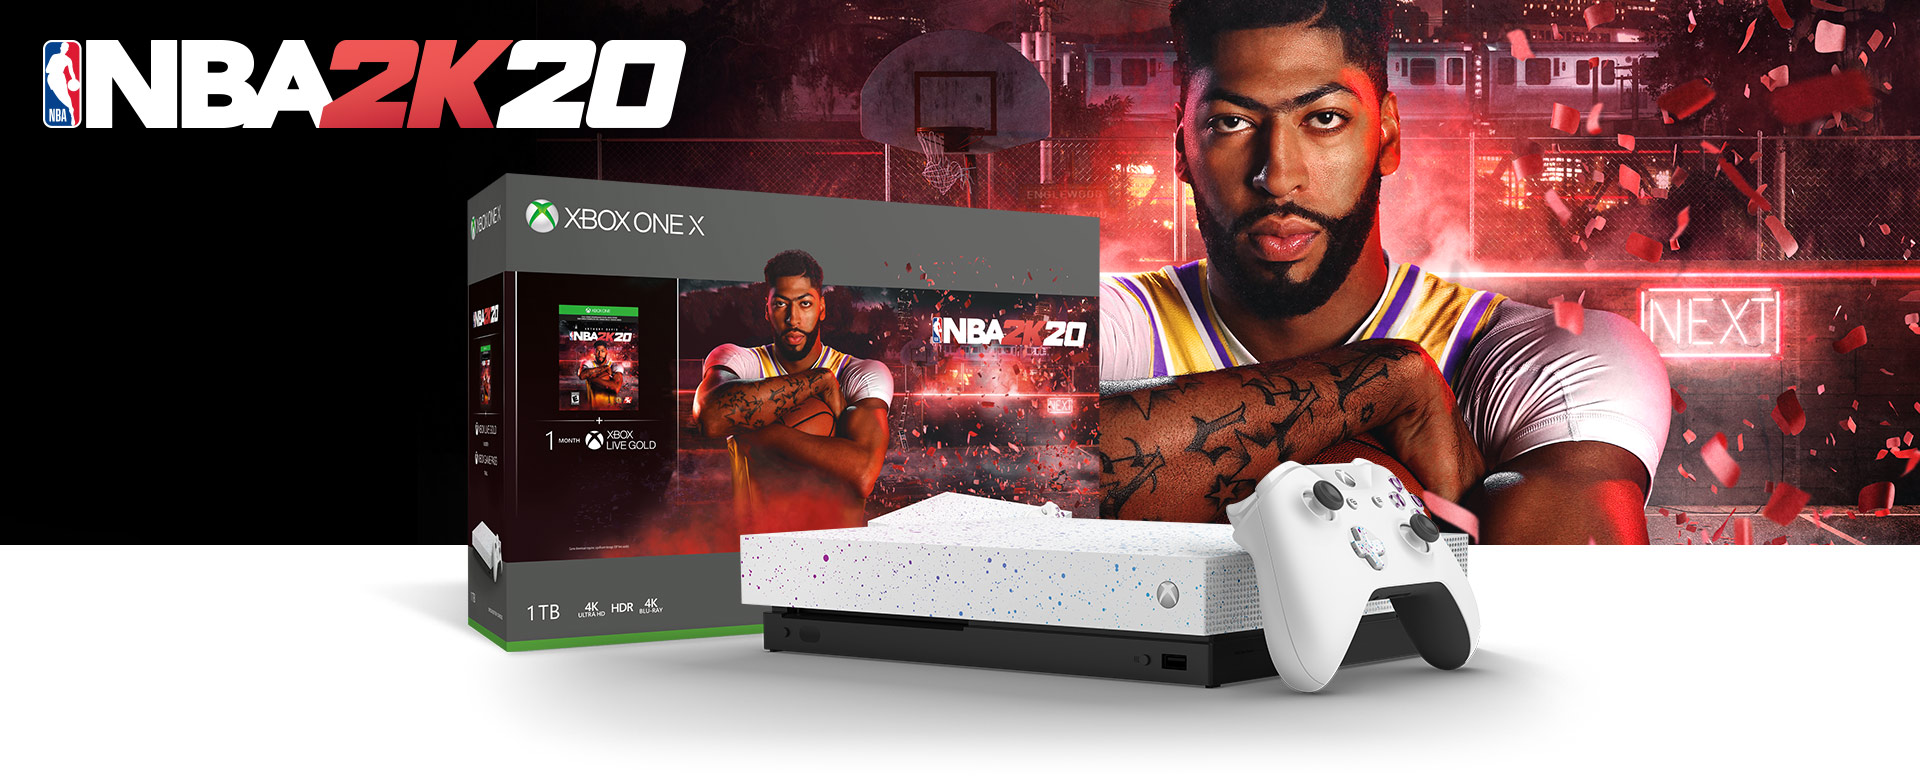 Xbox One X console in front of a hardware bundle box featuring NBA 2K20 art